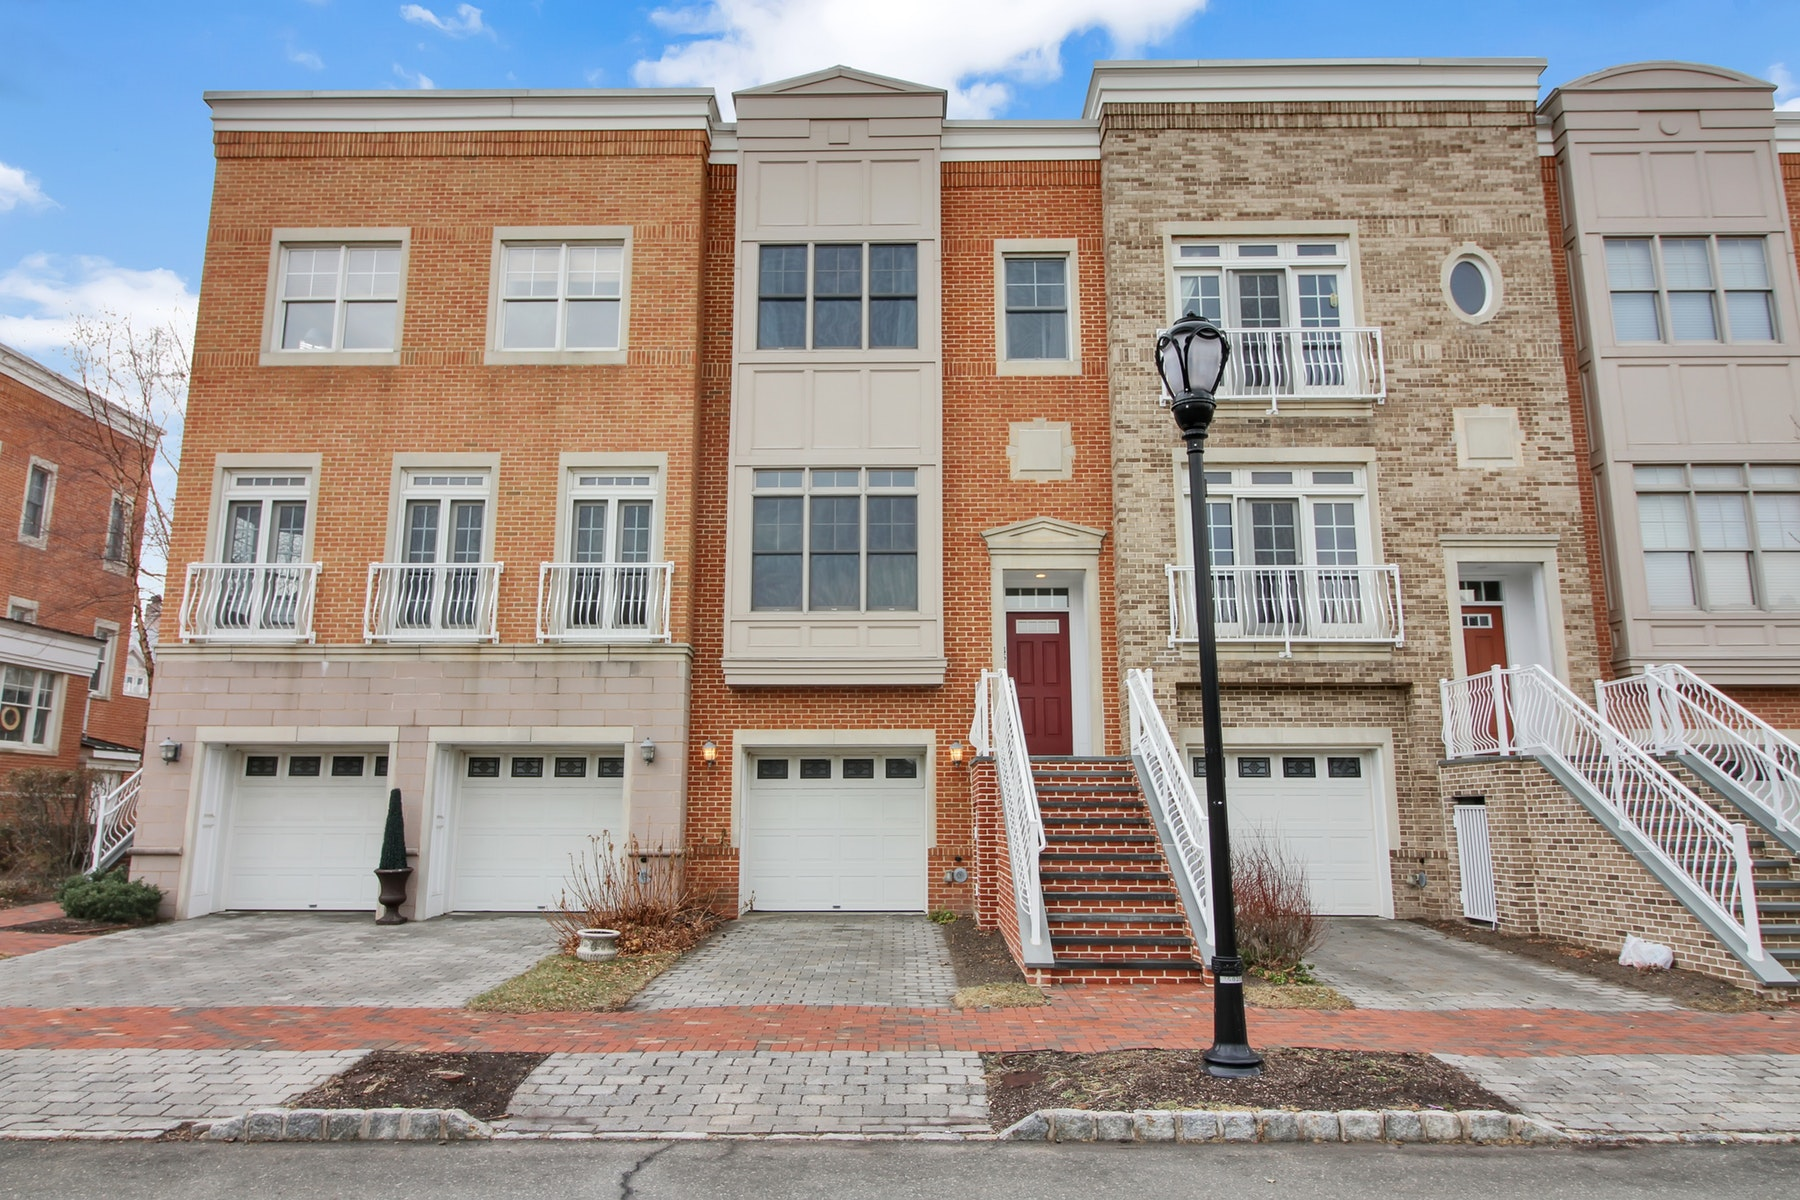 Condominium for Sale at This Well Maintained, Waterfront Townhouse Provides Spacious Living 15 Intrepid Pl #15 Jersey City, New Jersey 07305 United States